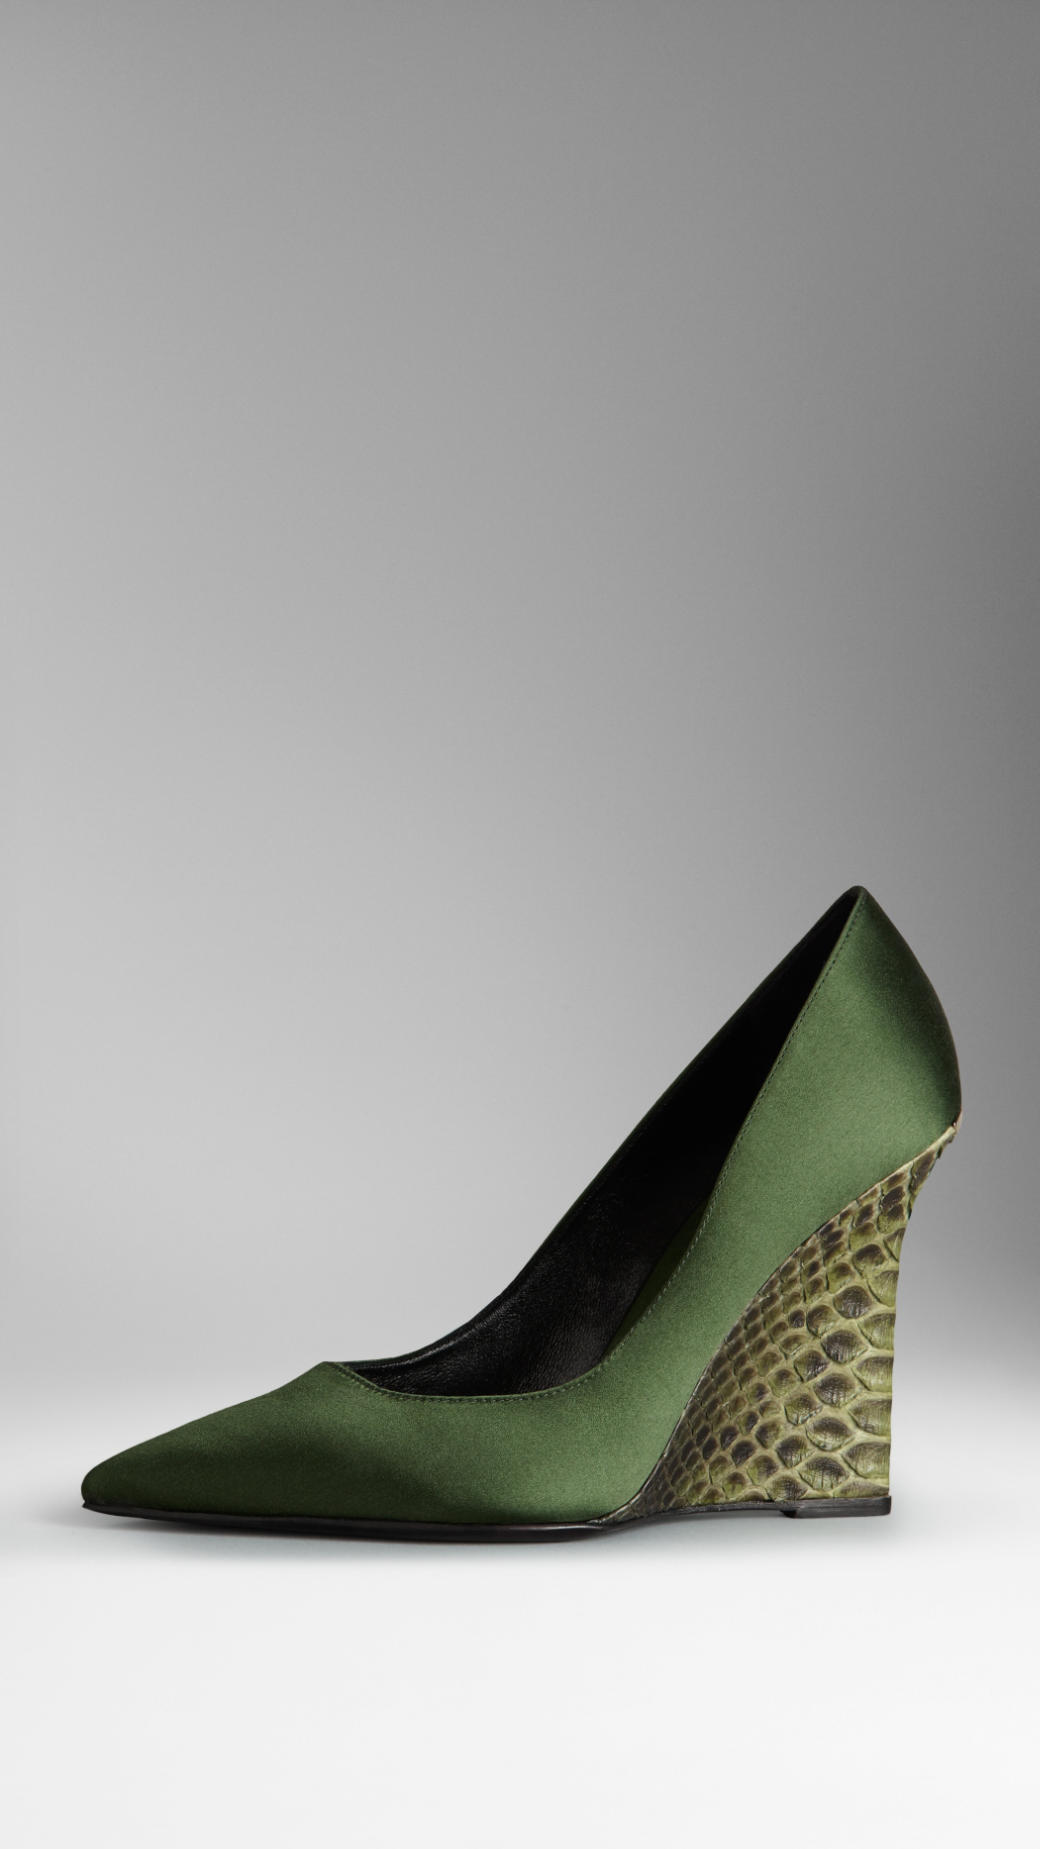 8bdab83d462b Burberry Satin Python Wedge Pumps in Green - Lyst